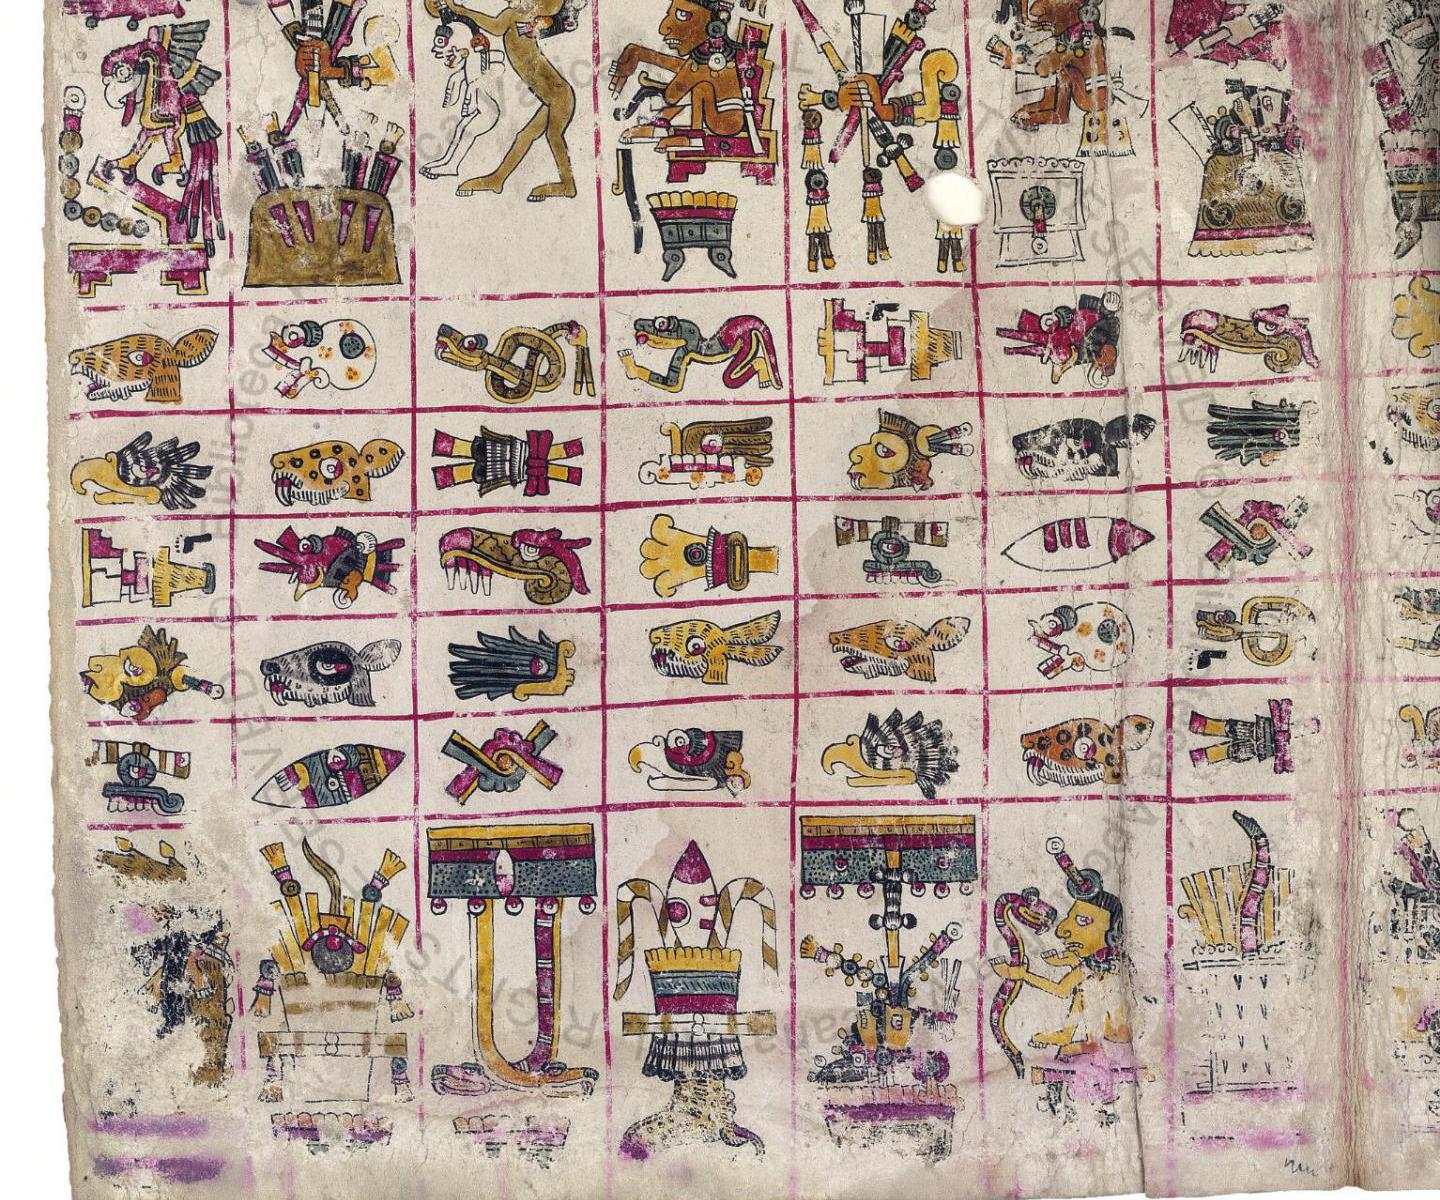 The Vatican Library treasures around 75,000 codices, 85000 incunabula and a grand total of more than a million books.